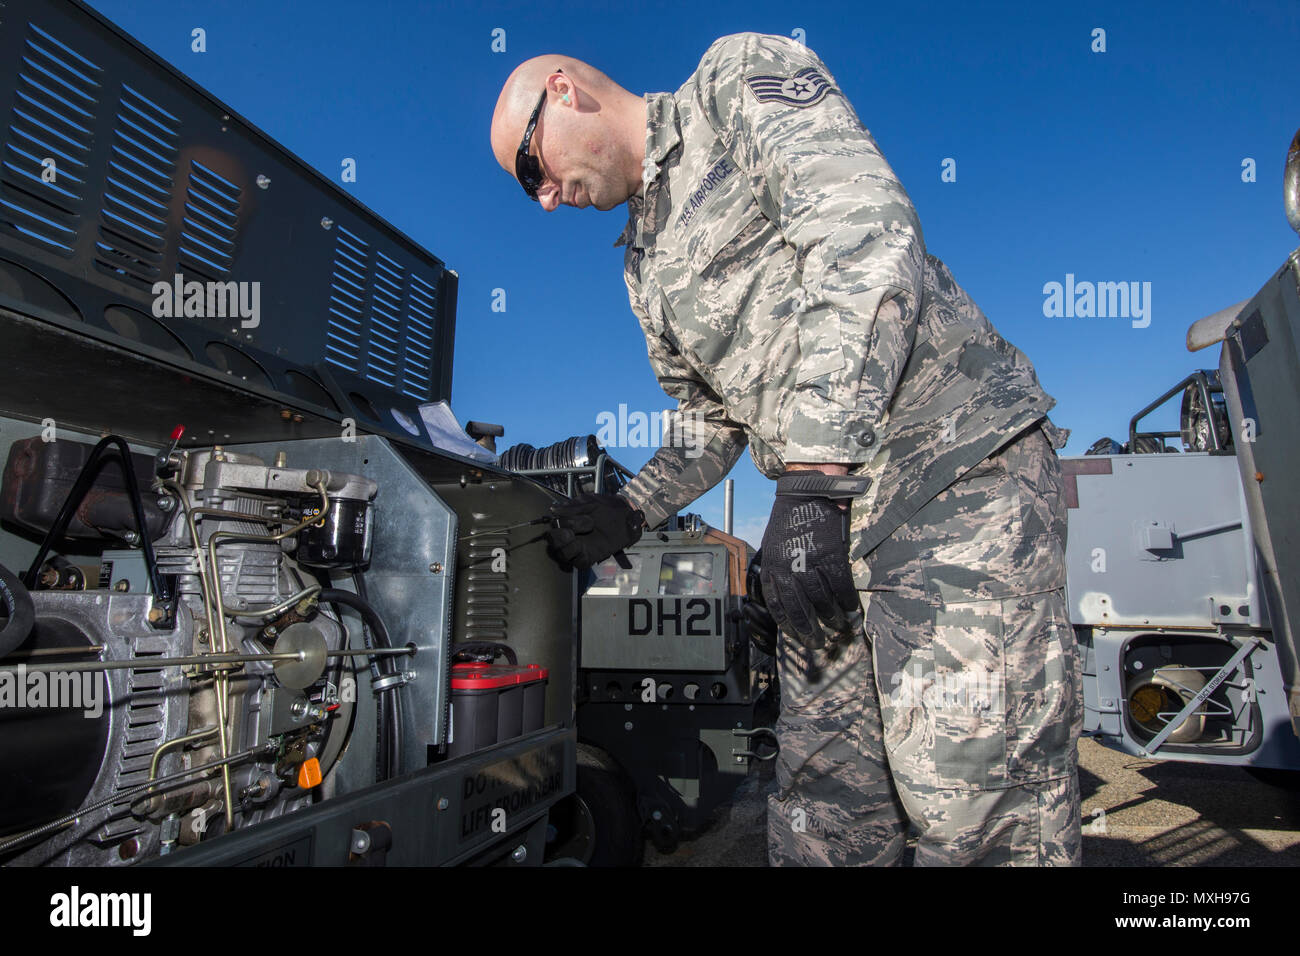 Staff Sgt. Joseph Cox, Aerospace Ground Equipment Technician, 108th Wing, New Jersey Air National Guard, performs service inspections and operations checks of all the equipment at the 108th AGE yard at Joint Base McGuire-Dix-Lakehurst, N.J., Nov. 5, 2016. (U.S. Air National Guard photo by Master Sgt. Mark C. Olsen/Released) - Stock Image